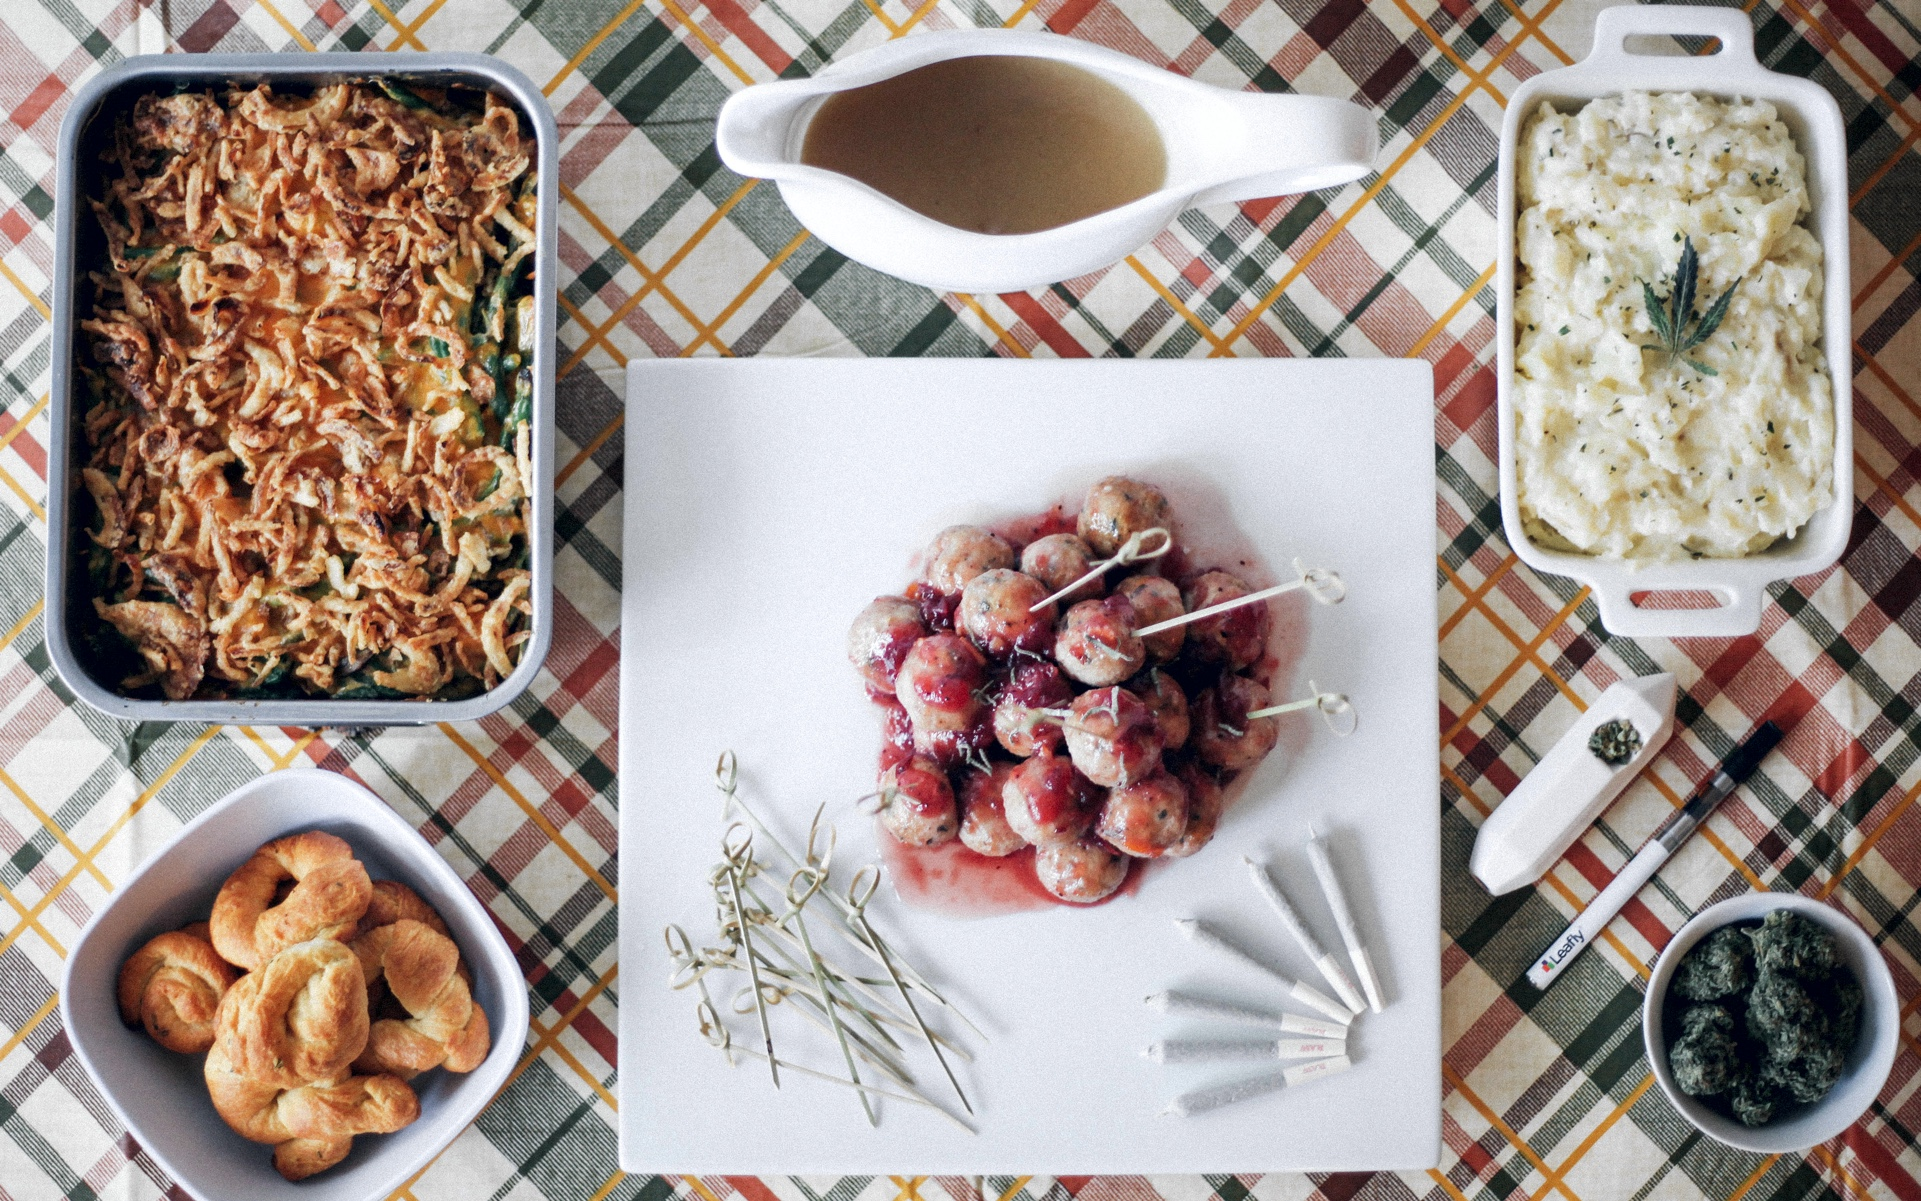 Enjoy a Gourmet Cannabis-Infused Thanksgiving with These Three Recipes | Leafly